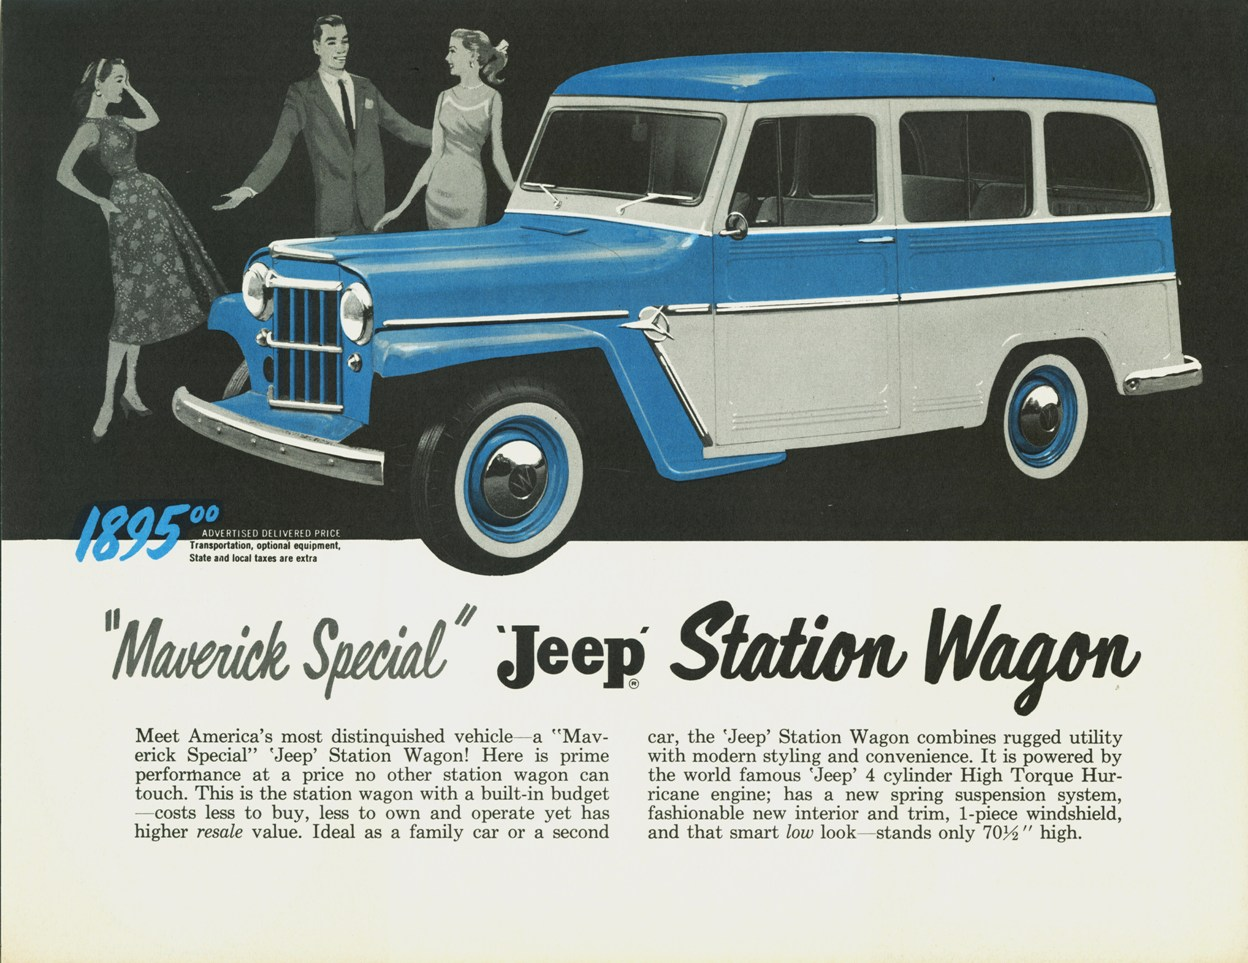 1958 Willys Jeep Wagon http://flickriver.com/photos/autohistorian/4116322161/